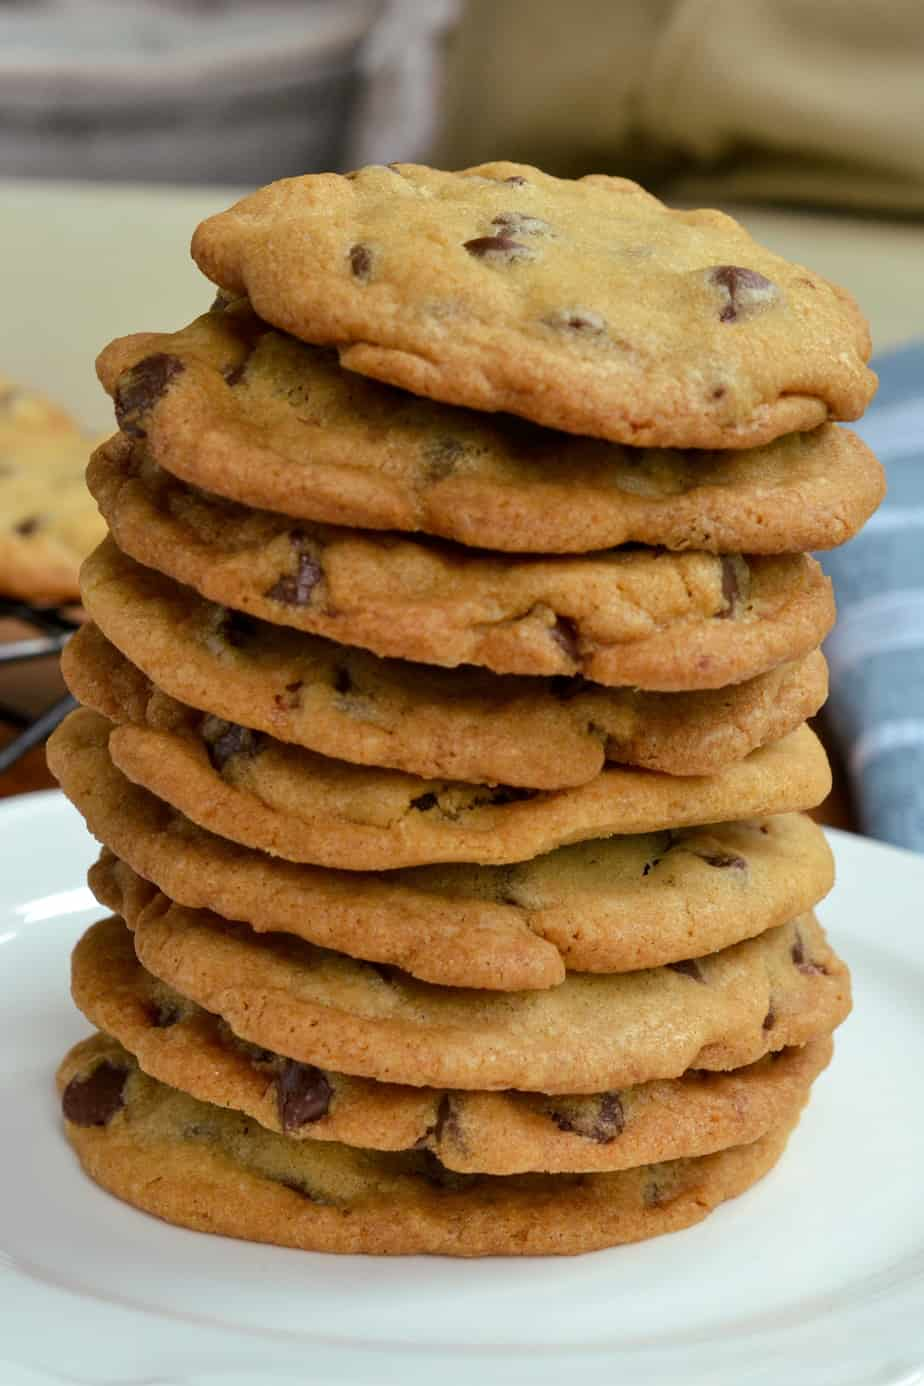 A stack of thin crispy chocolate chip cookies